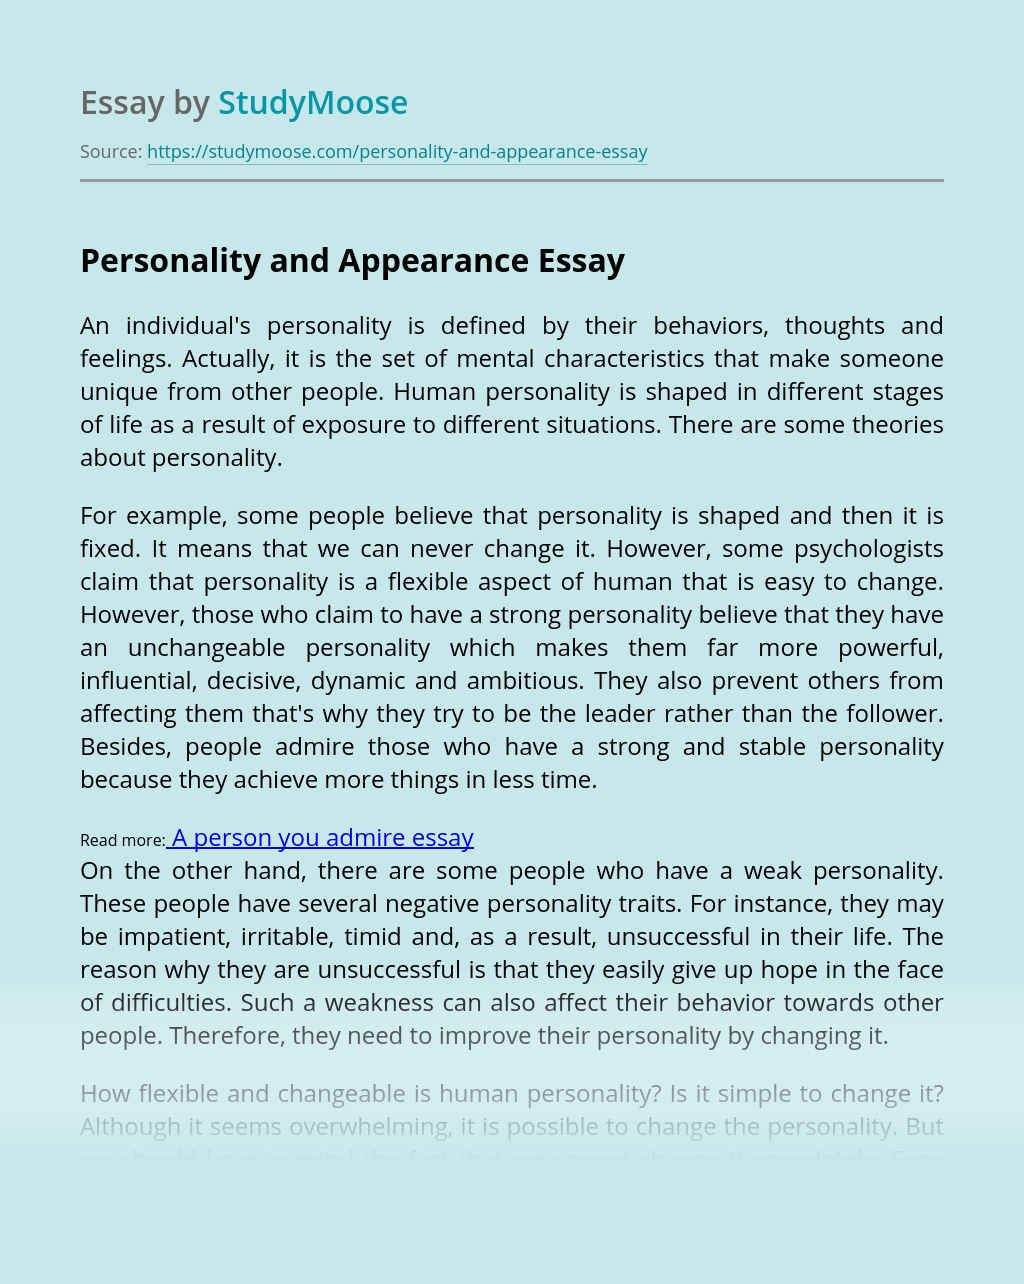 Personality and Appearance